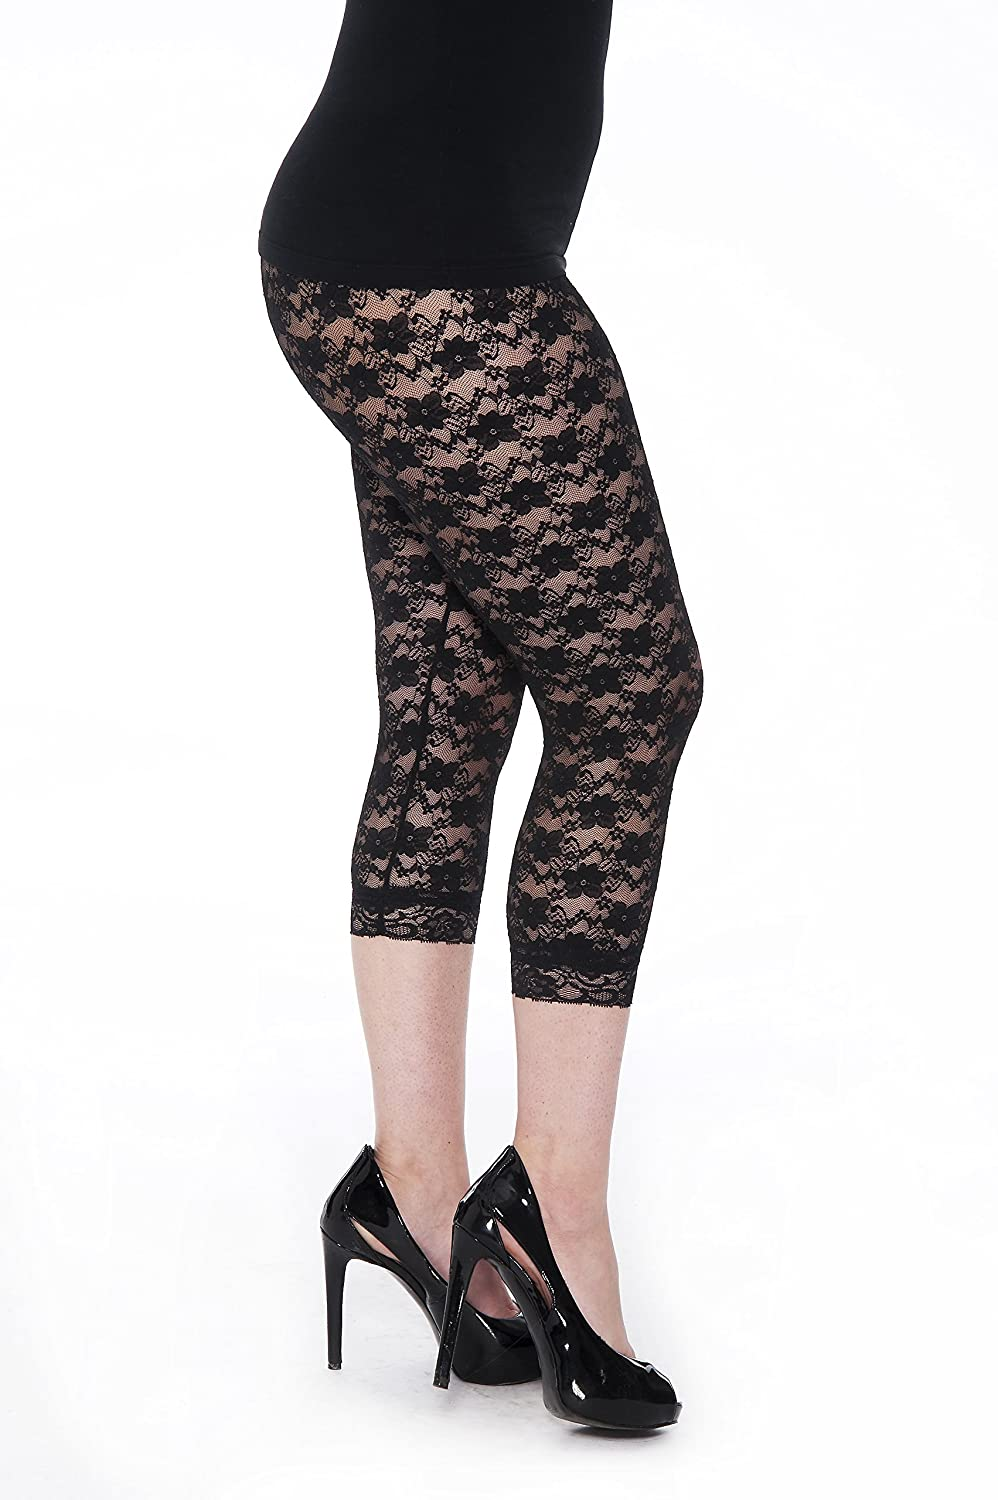 28ee20a006e3a Unique Styles Lace Capri Leggings - Footless Tights Floral Pattern Cropped  Pants at Amazon Women's Clothing store: